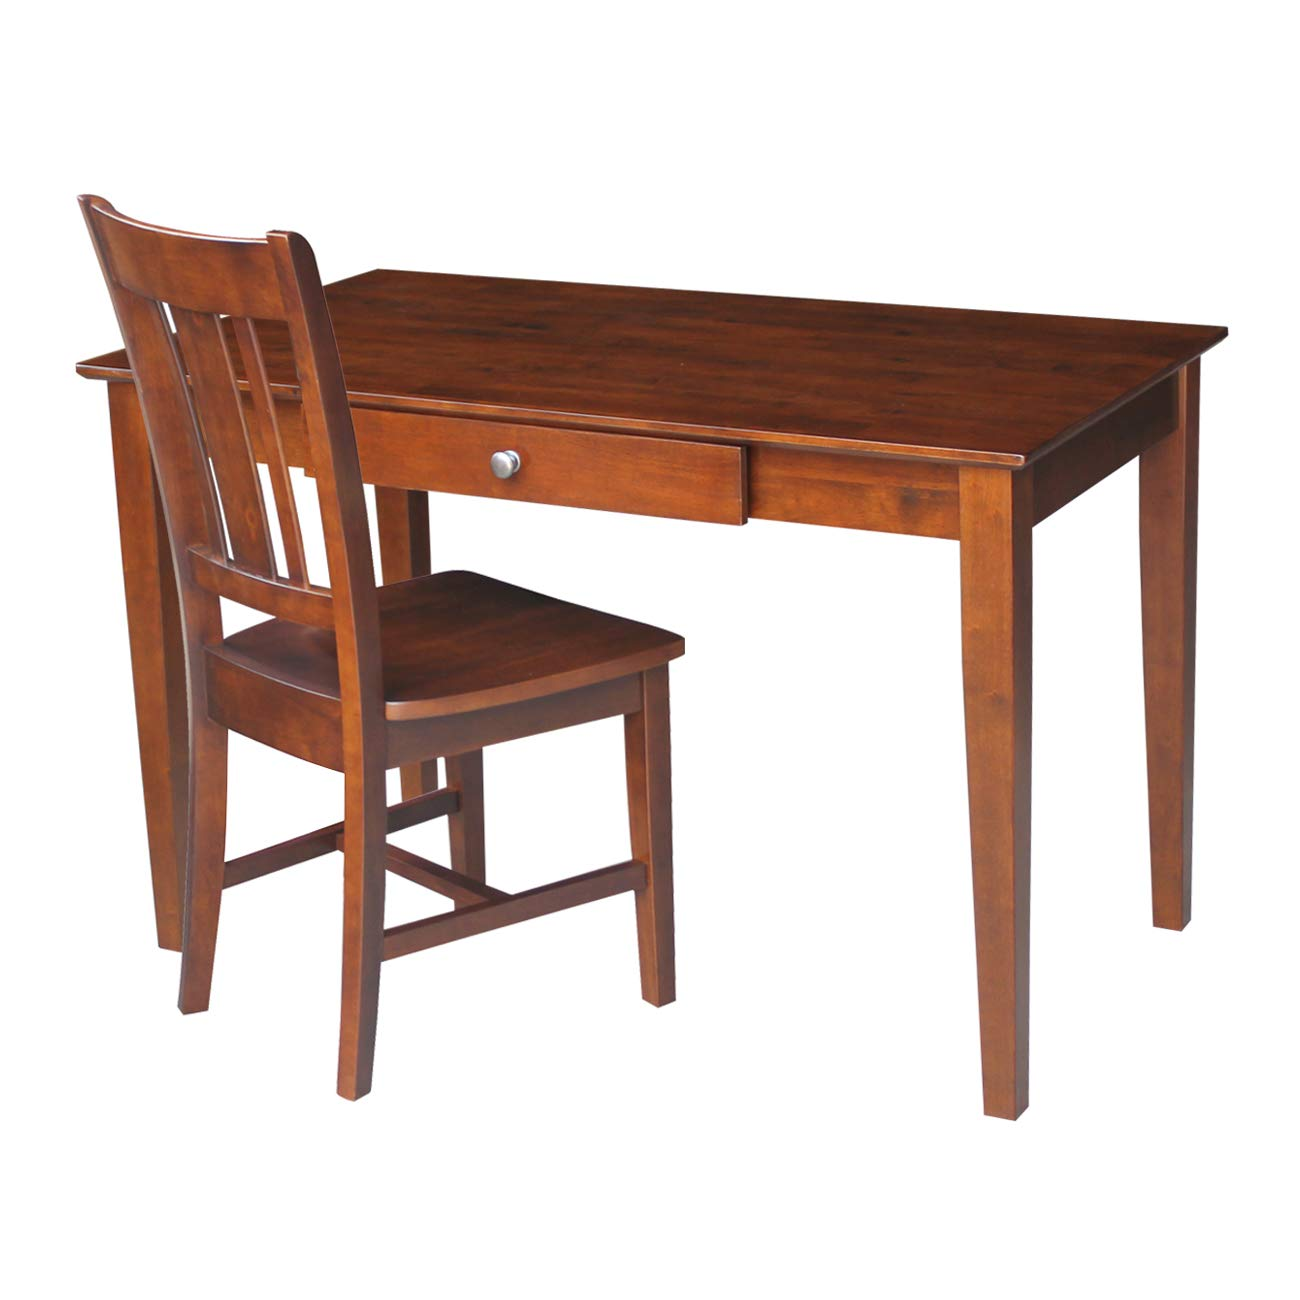 Espresso Finish International Concepts Basic Desk with Drawer and Chair